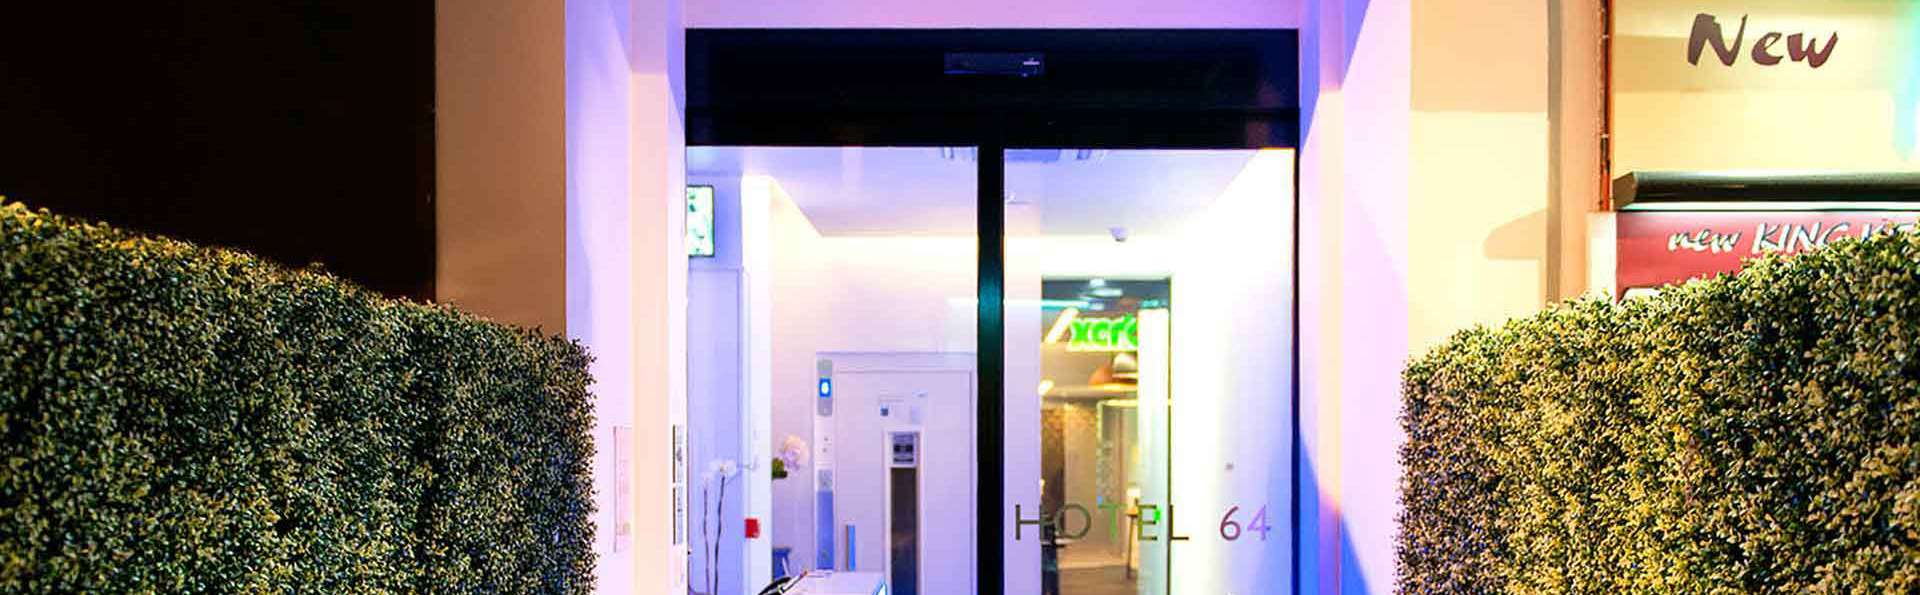 Hôtel 64 Nice - Edit_entrance.jpg